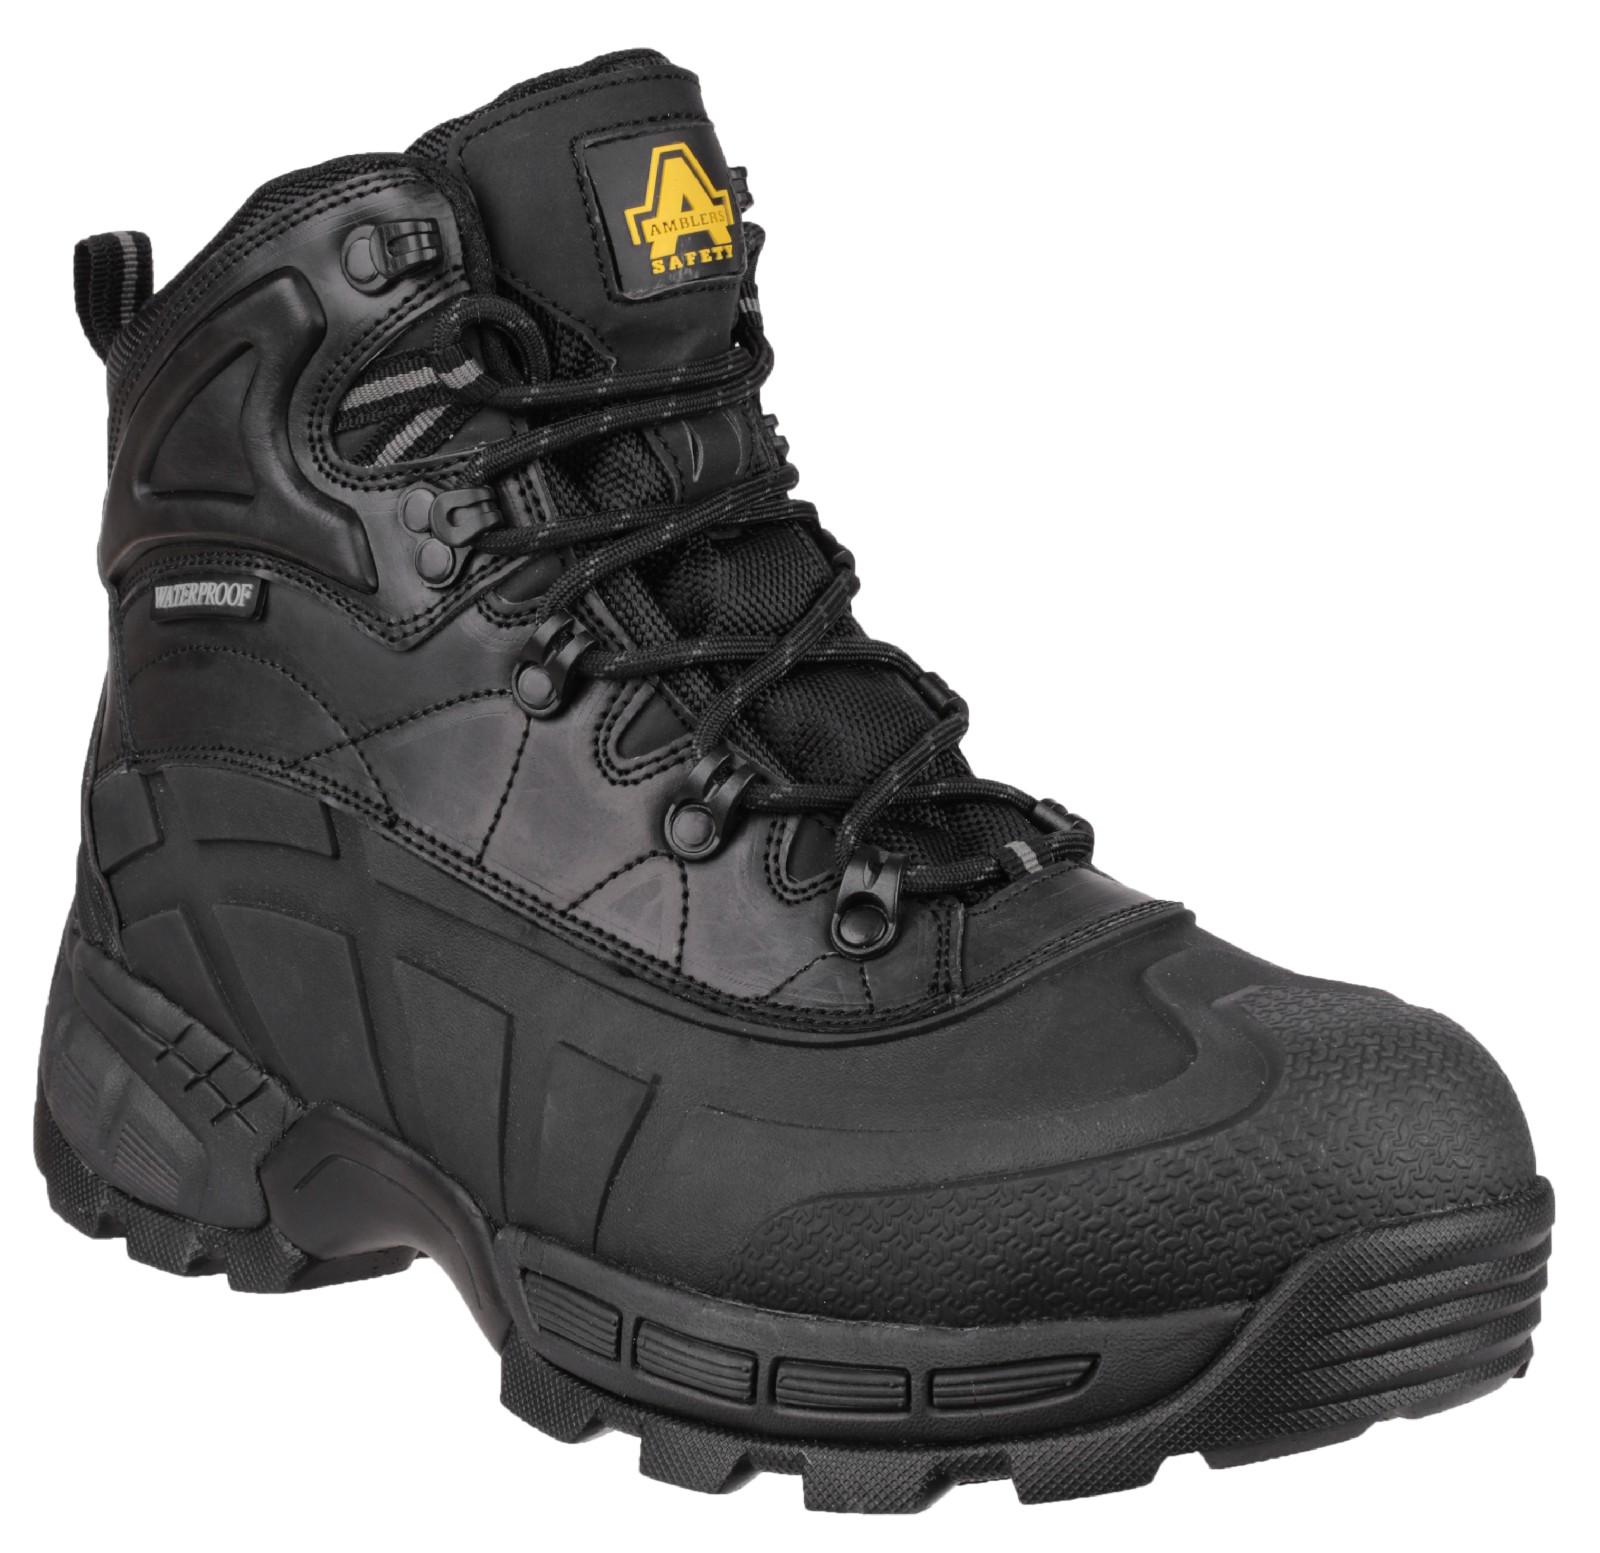 amblers fs430 orca s3 waterproof safety work boots black 6